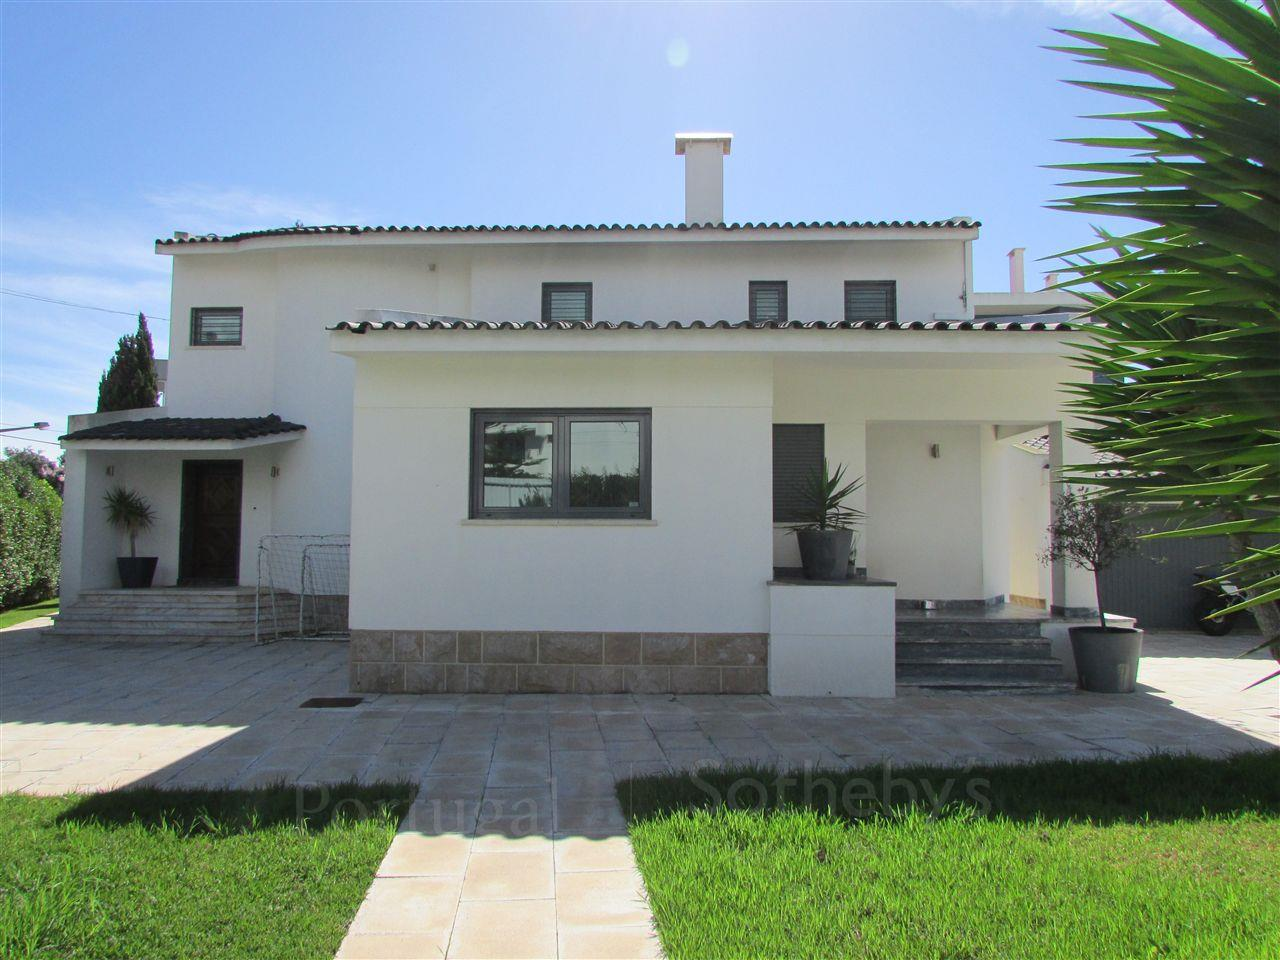 Maison unifamiliale pour l Vente à House, 5 bedrooms, for Sale Cascais, Lisbonne, 2775-001 Portugal